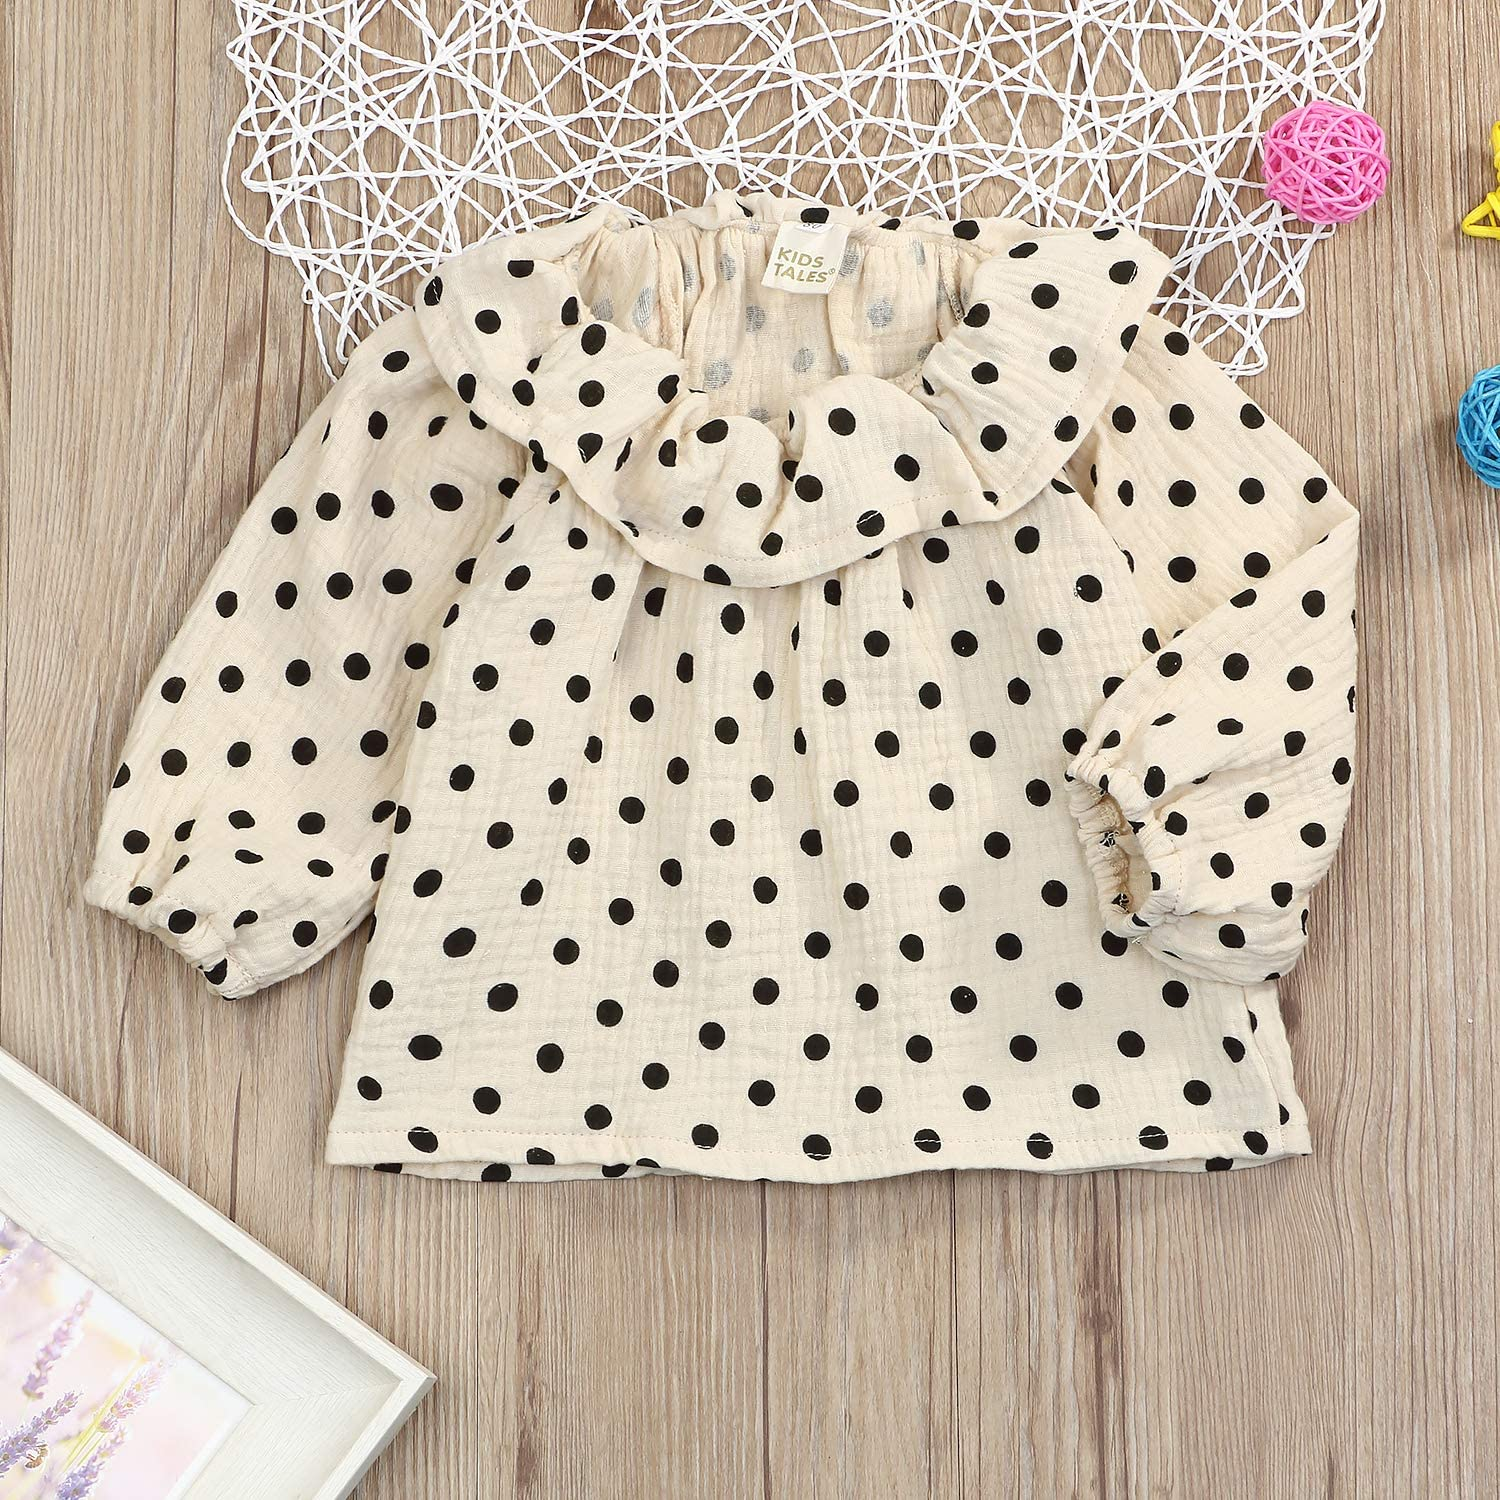 JEELLIGULAR Toddler Little Girls Outfit 1-5 T Long Sleeve Ruffle Collar Blouse Winter Clothes for Kids Baby Girl